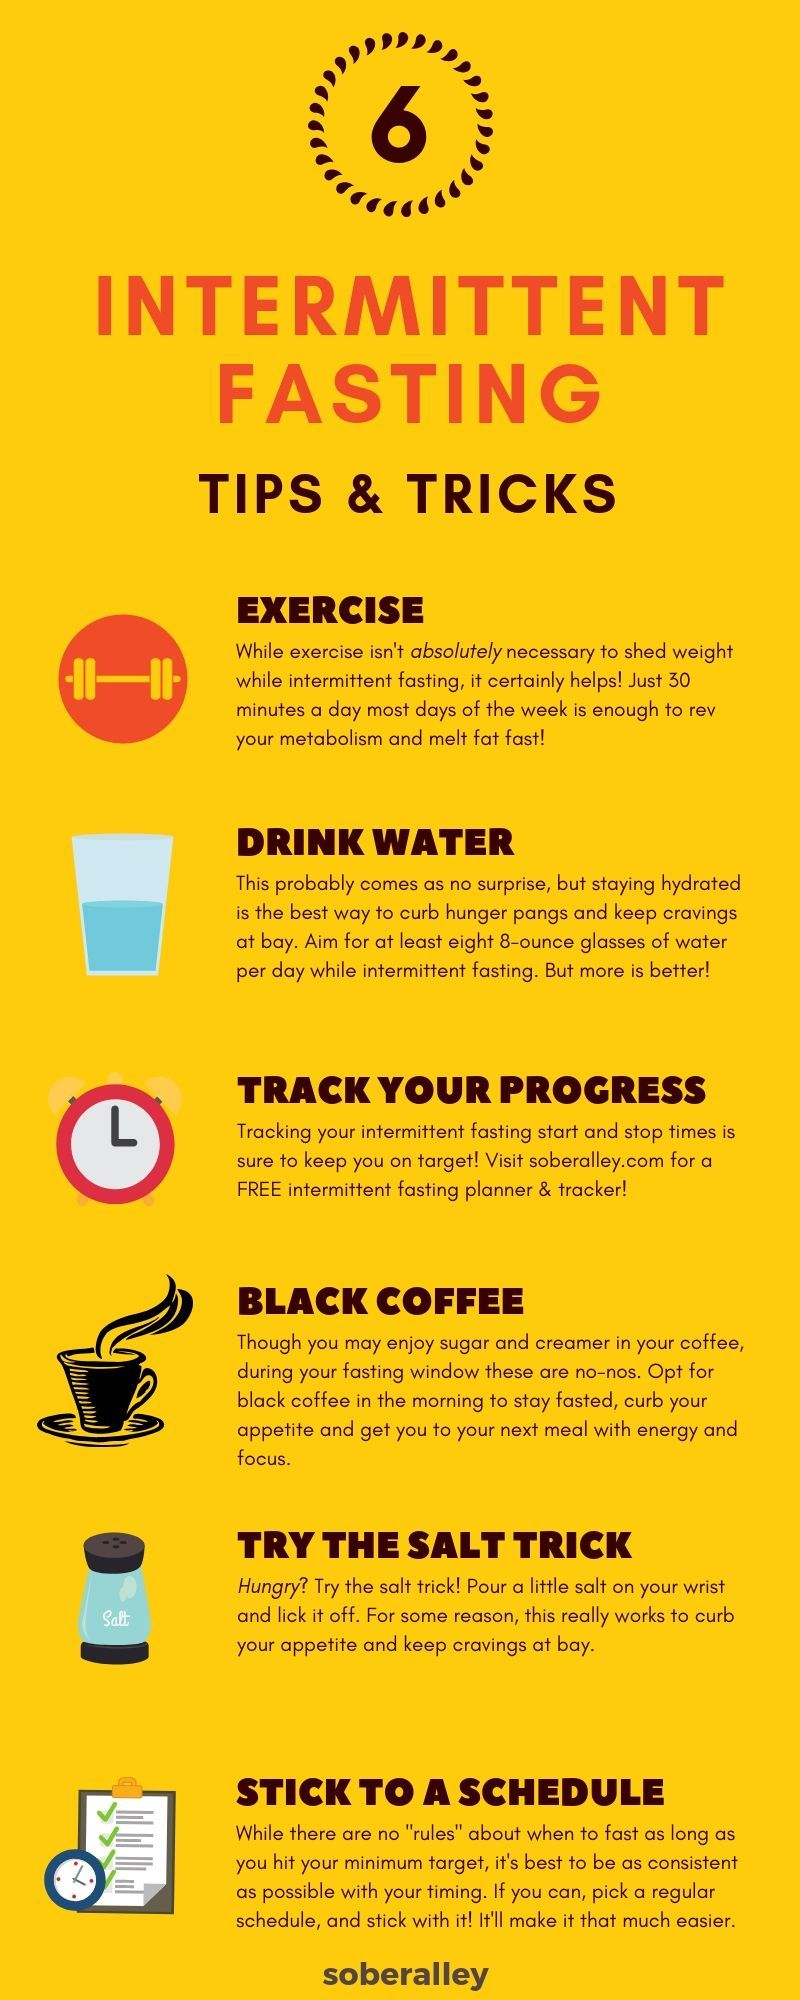 does+16/8+fasting+work+for+weight+loss